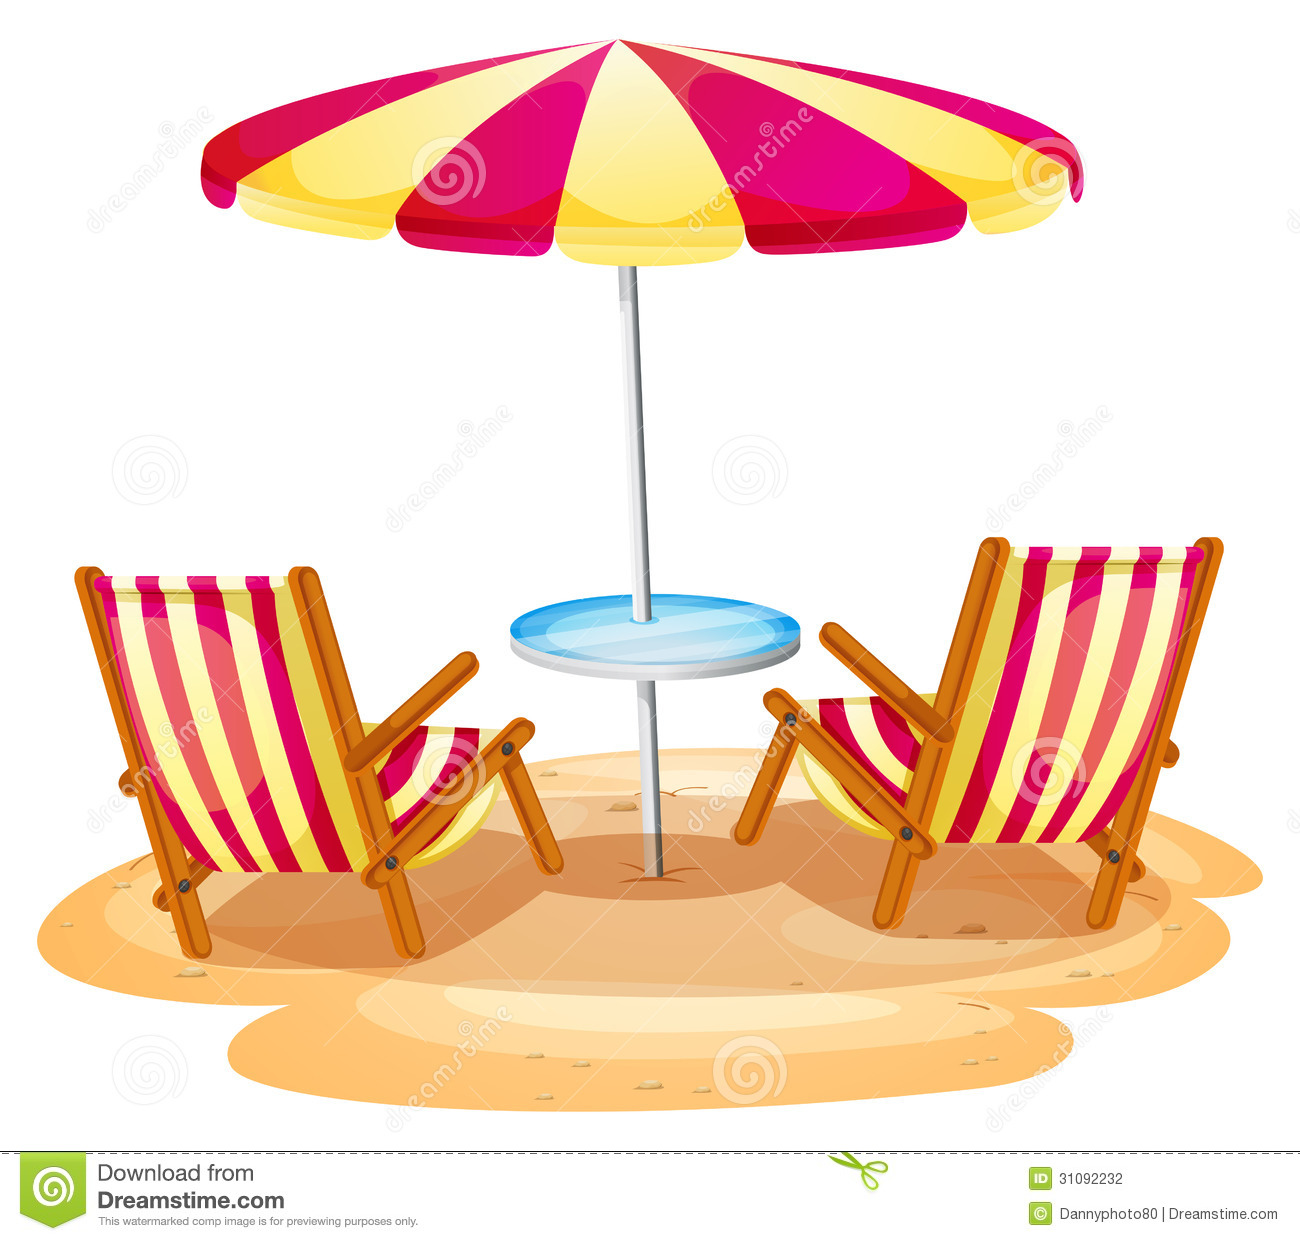 beach chair and umbrella clipart fishing kmart a stripe the two wooden chairs stock